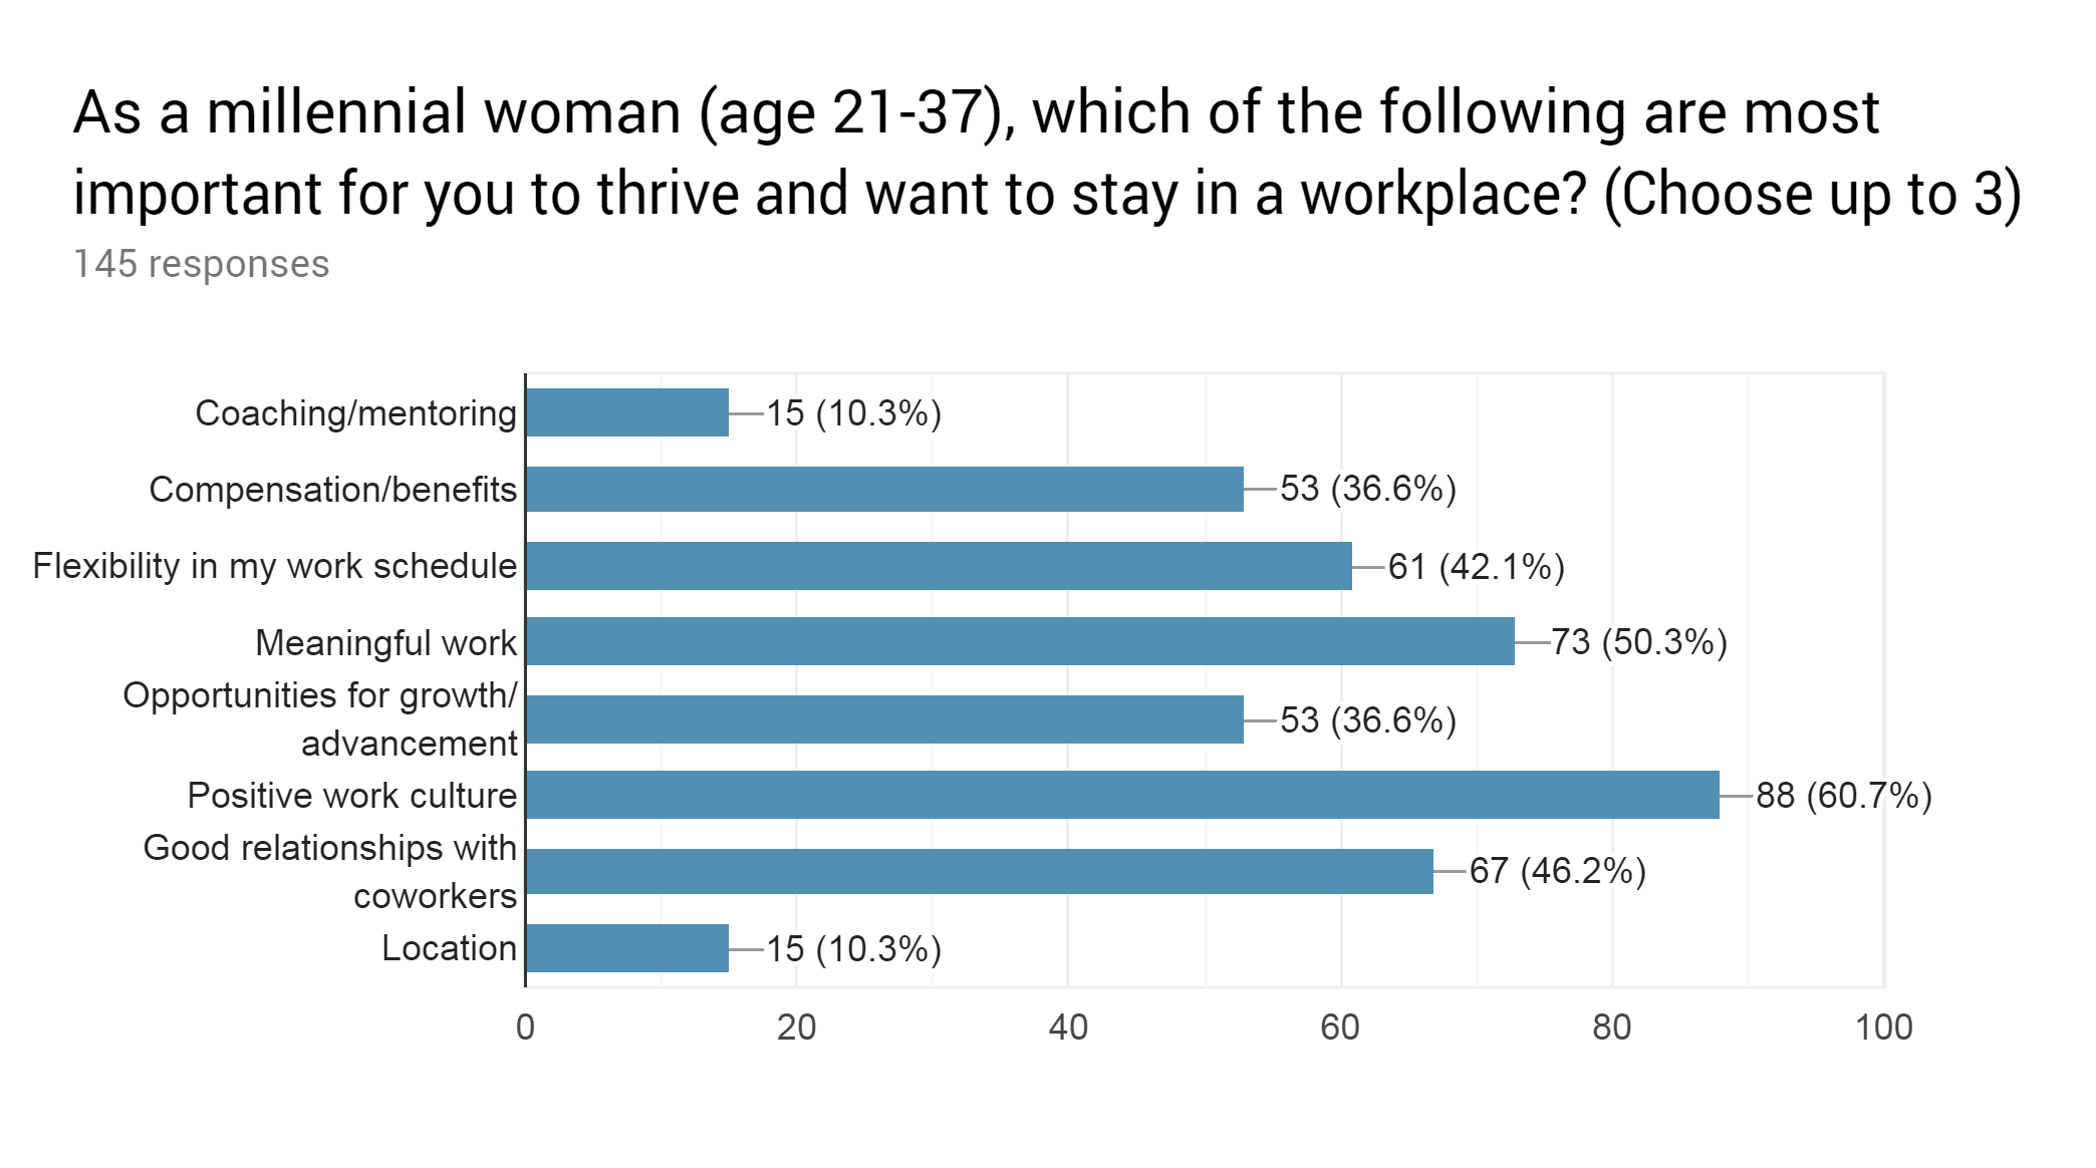 Attracting & Retaining Millennial Women in the Workplace: A Snapshot of What They Value Most - Survey Results - The Center Consulting Group - Leadership Coaching and Consulting for Businesses, Churches, and Nonprofits